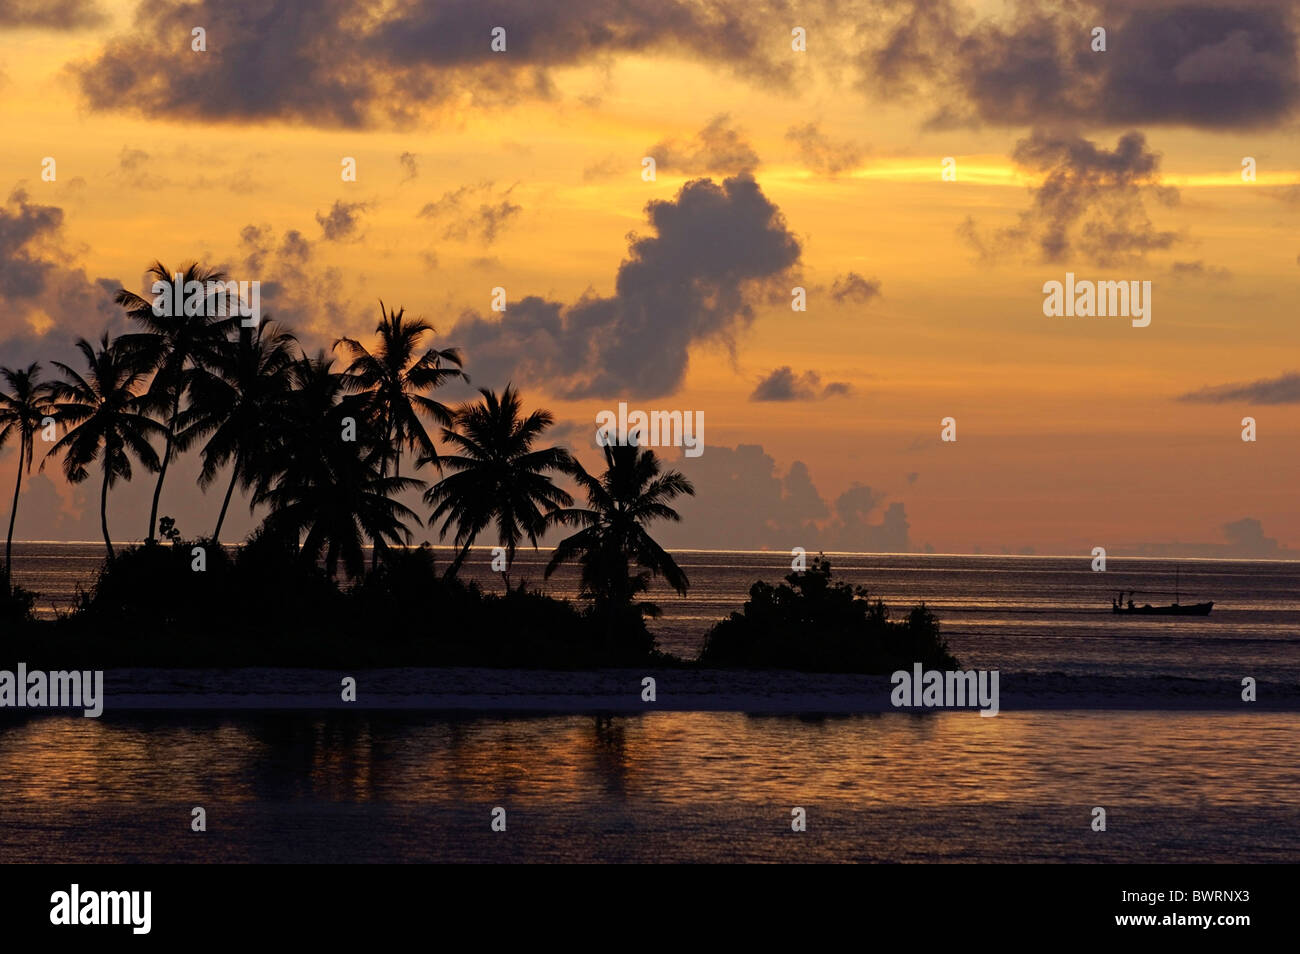 Silhouetted palm trees line the beach at sunrise, Maldives. - Stock Image